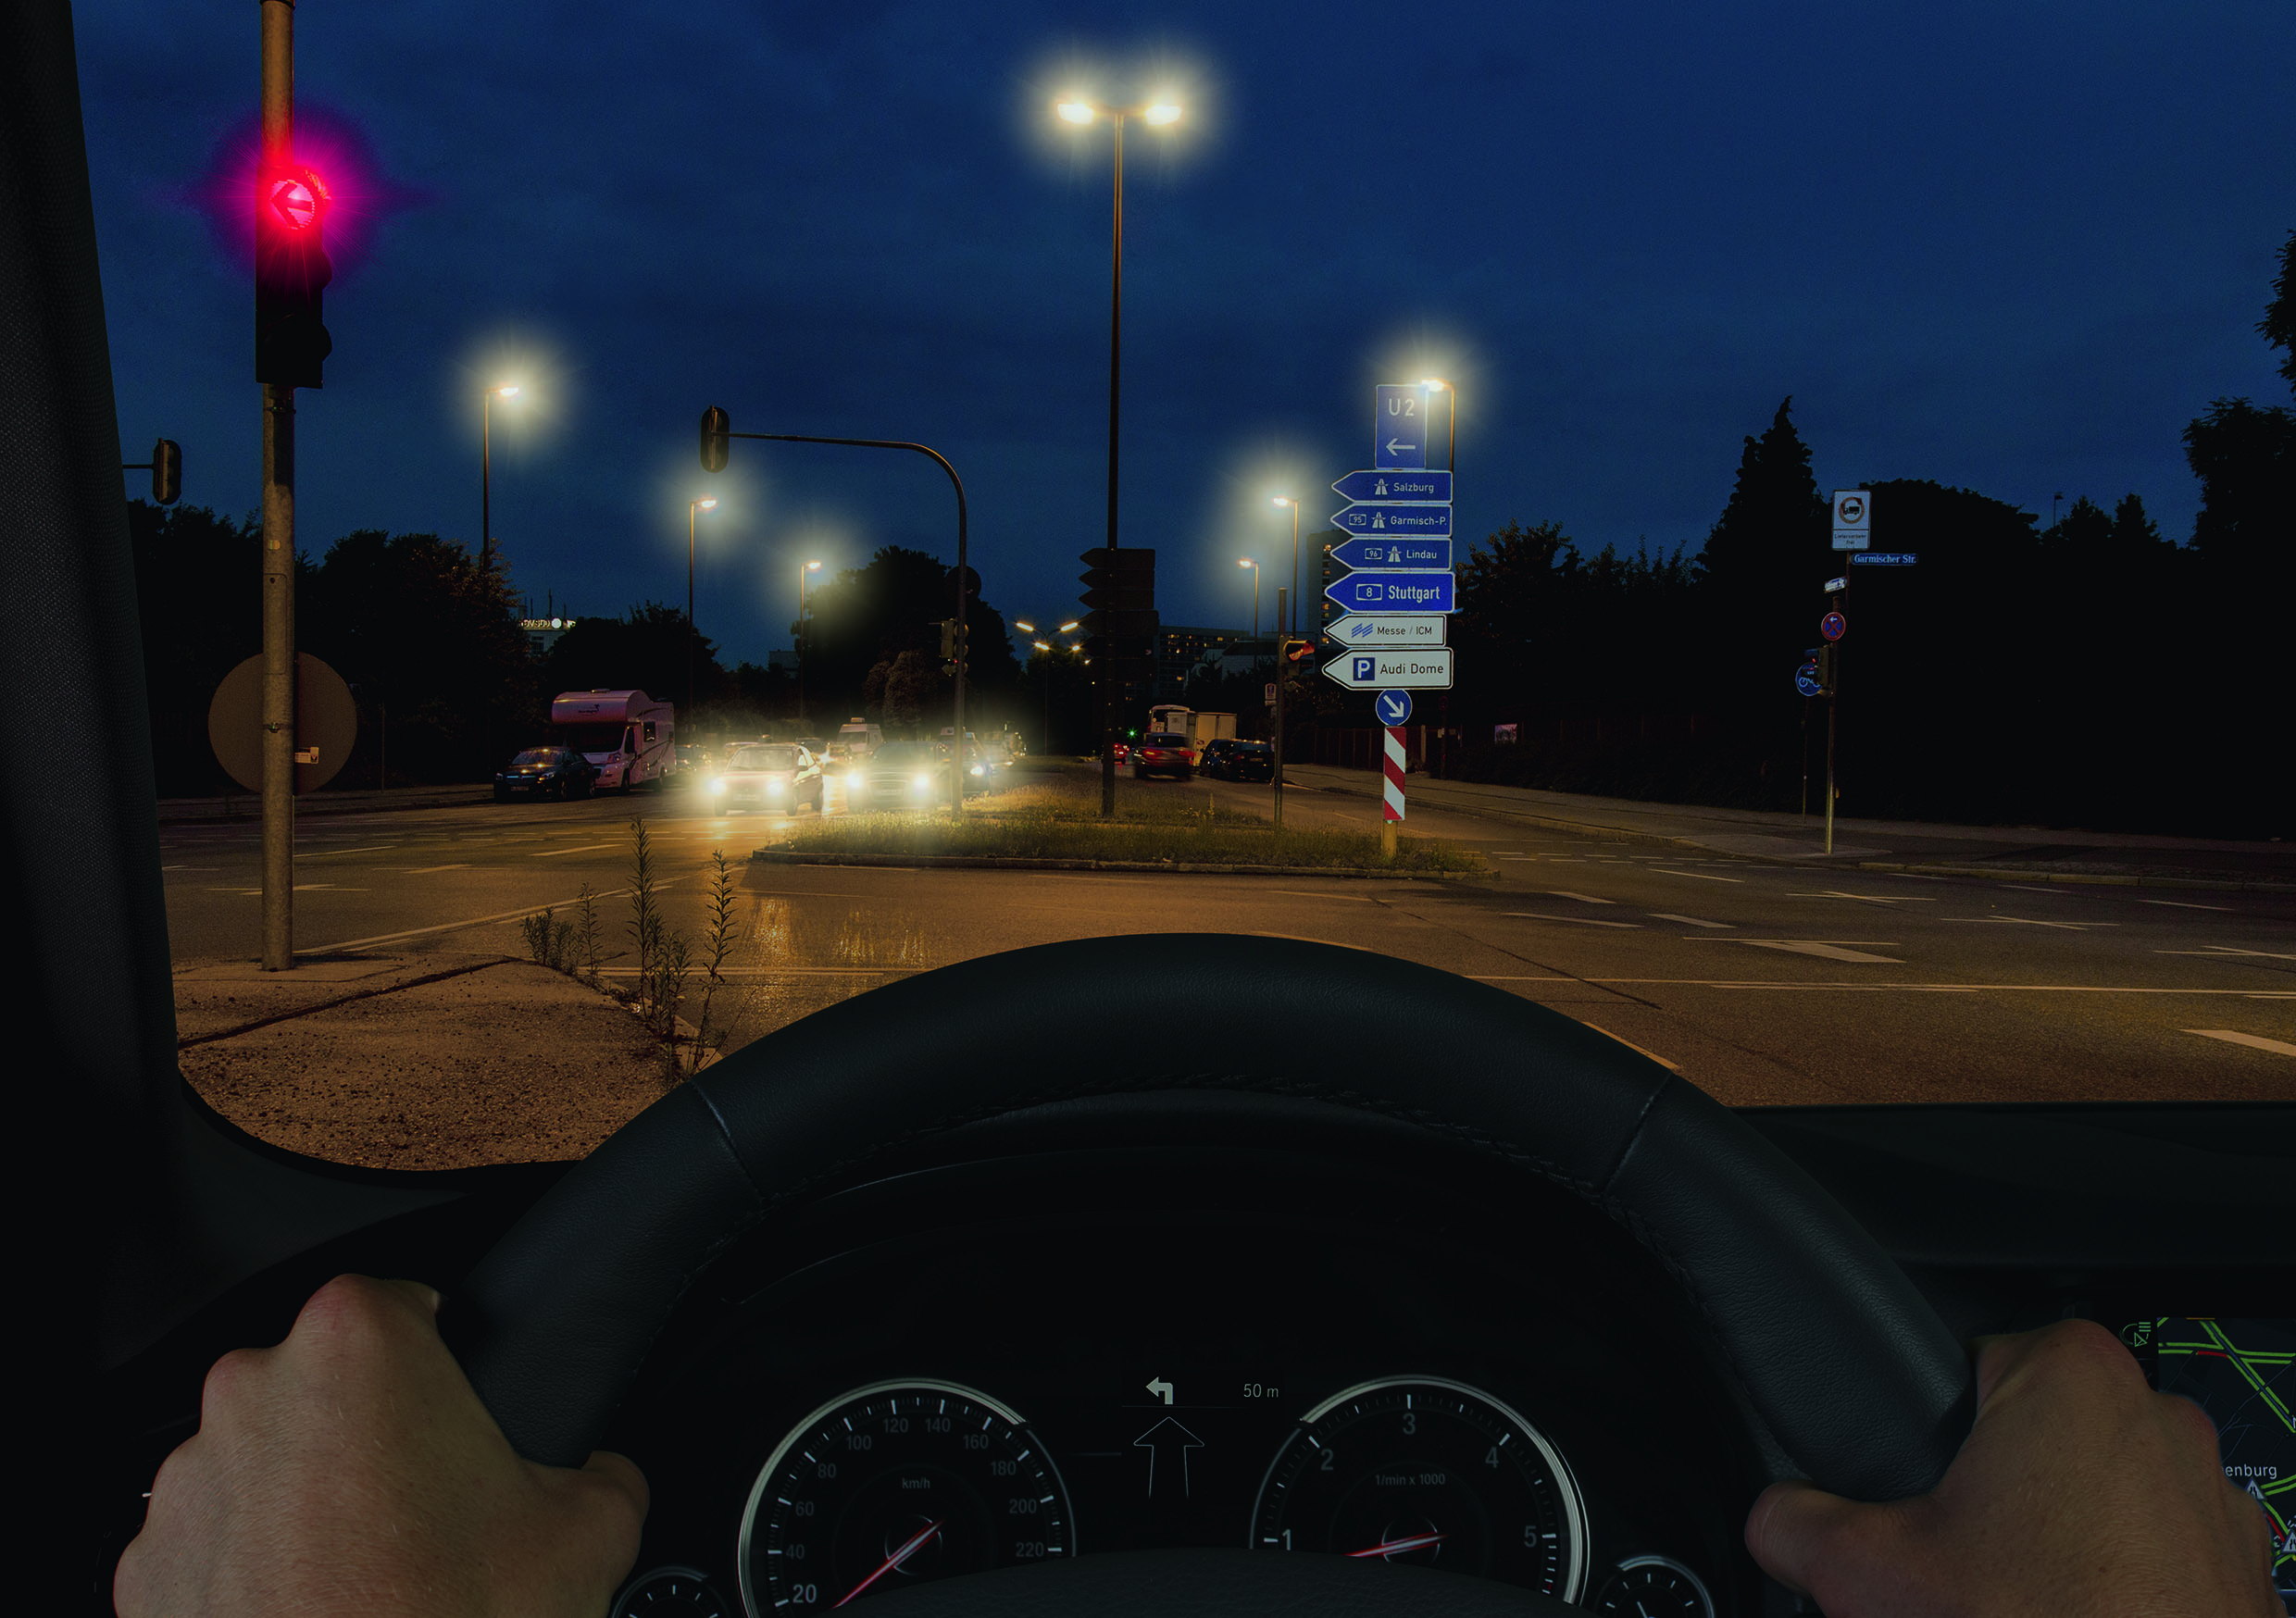 1 Night vision without Road